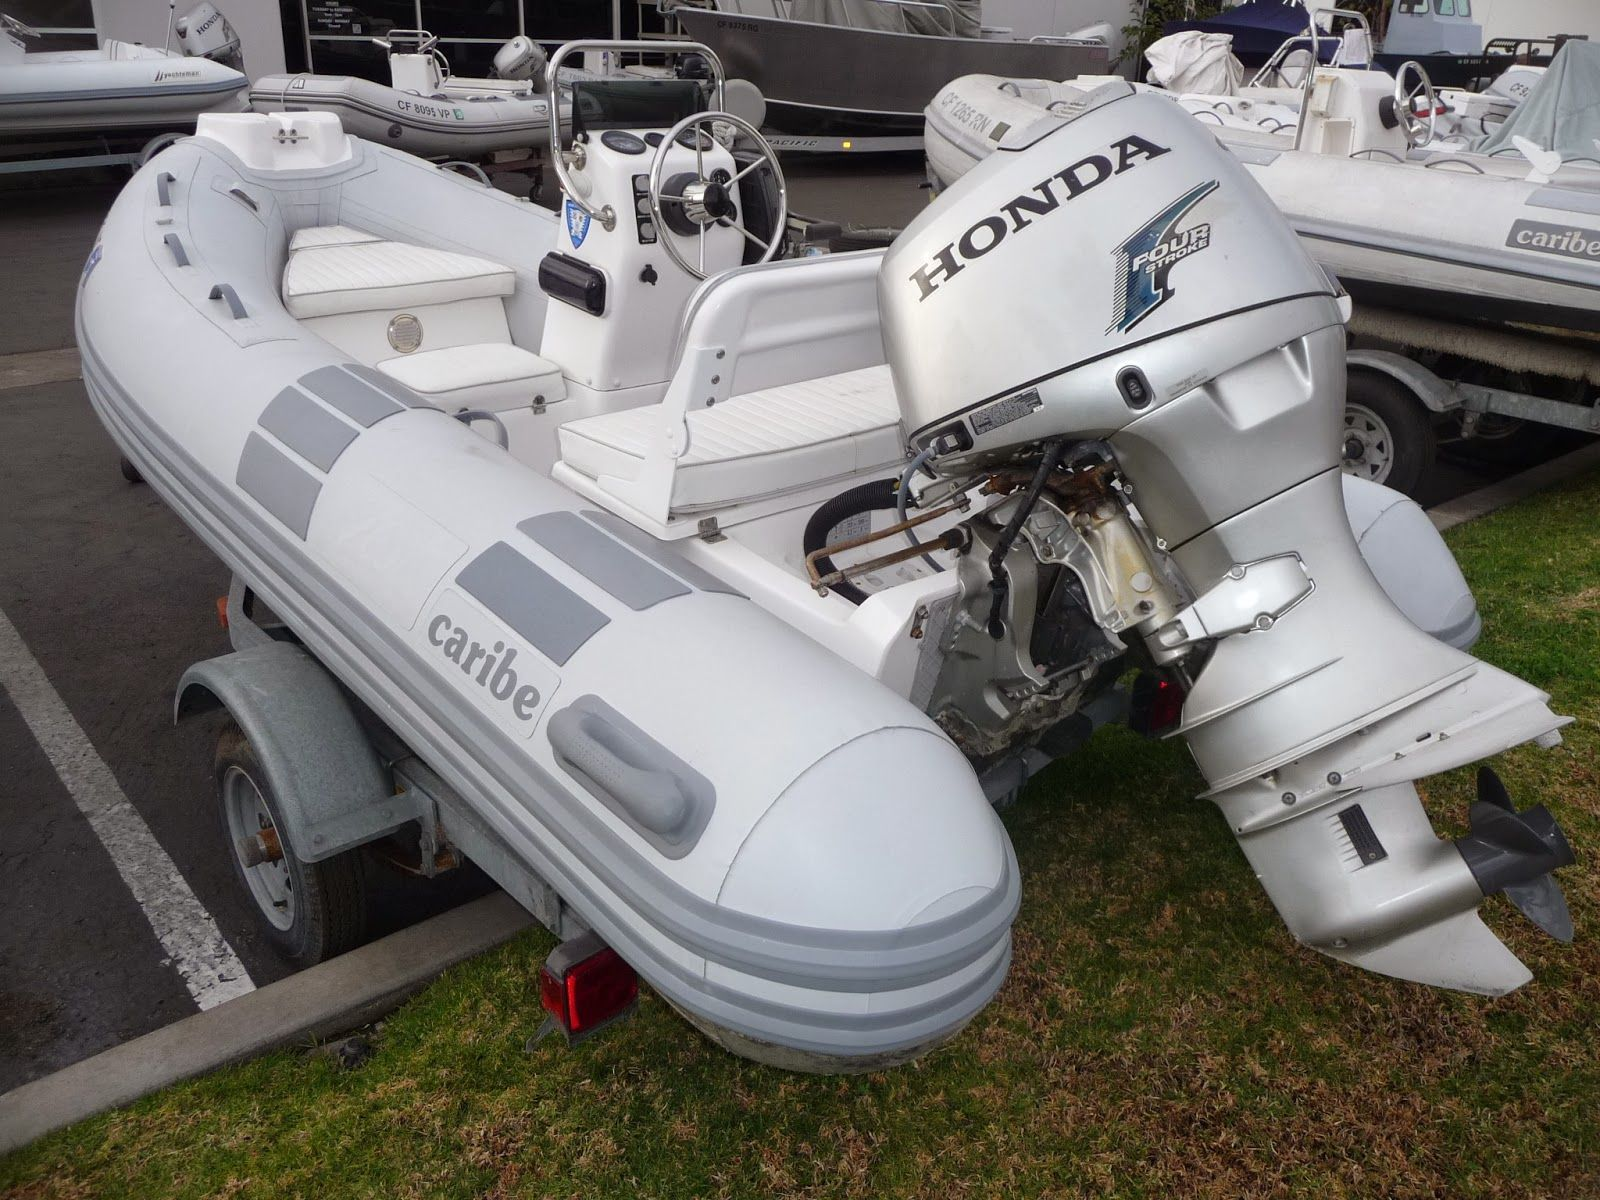 honda outboard motor side view - Google Search | Boat Engine